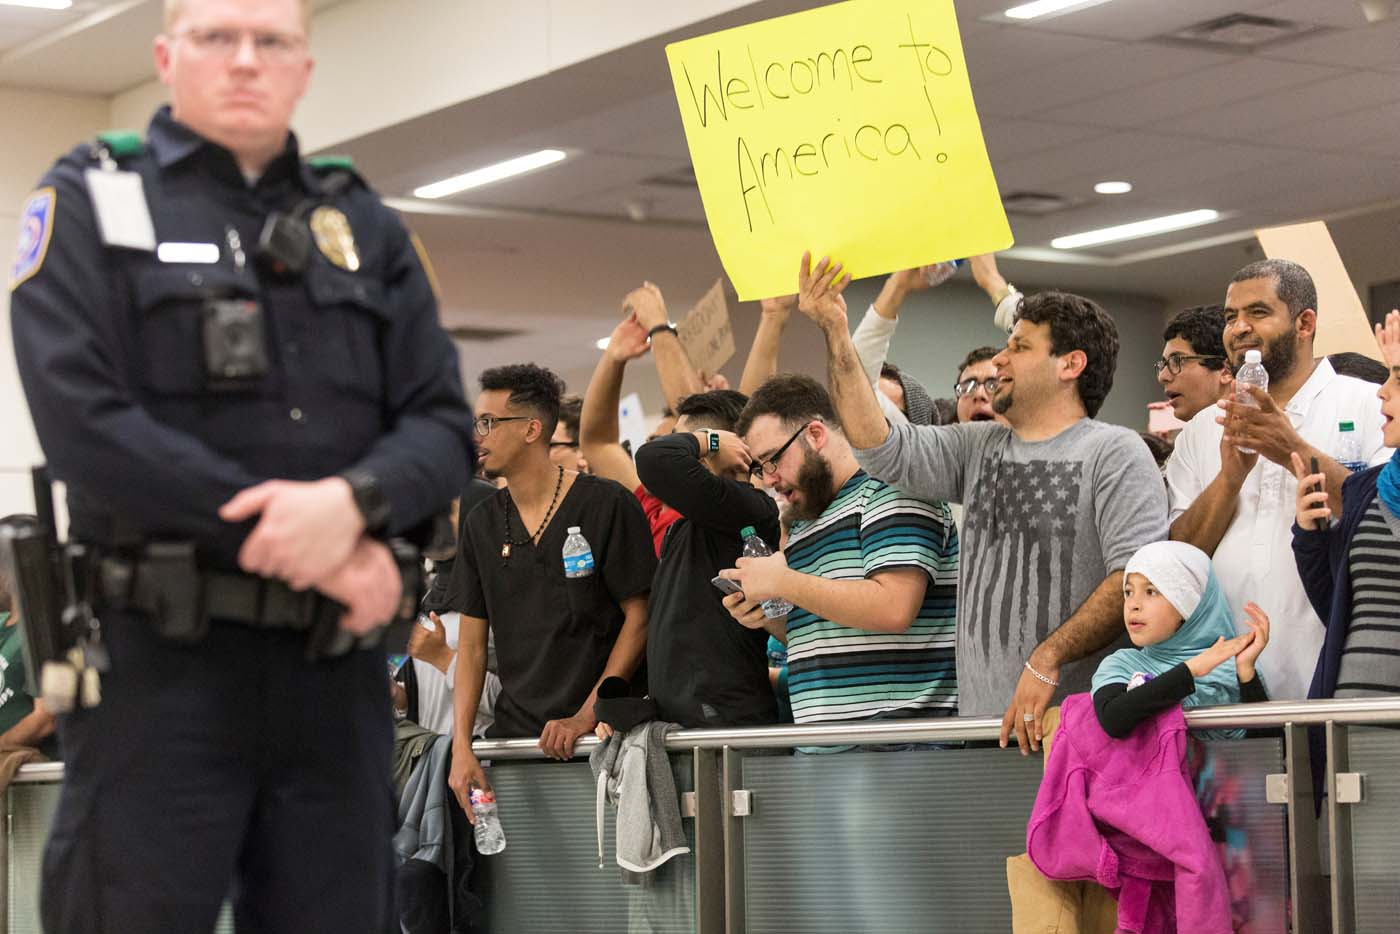 A man holds a sign as people protest against the travel ban imposed by U.S. President Donald Trump's executive order, at Dallas/Fort Worth International Airport in Dallas, Texas, U.S. January 28, 2017. REUTERS/Laura Buckman